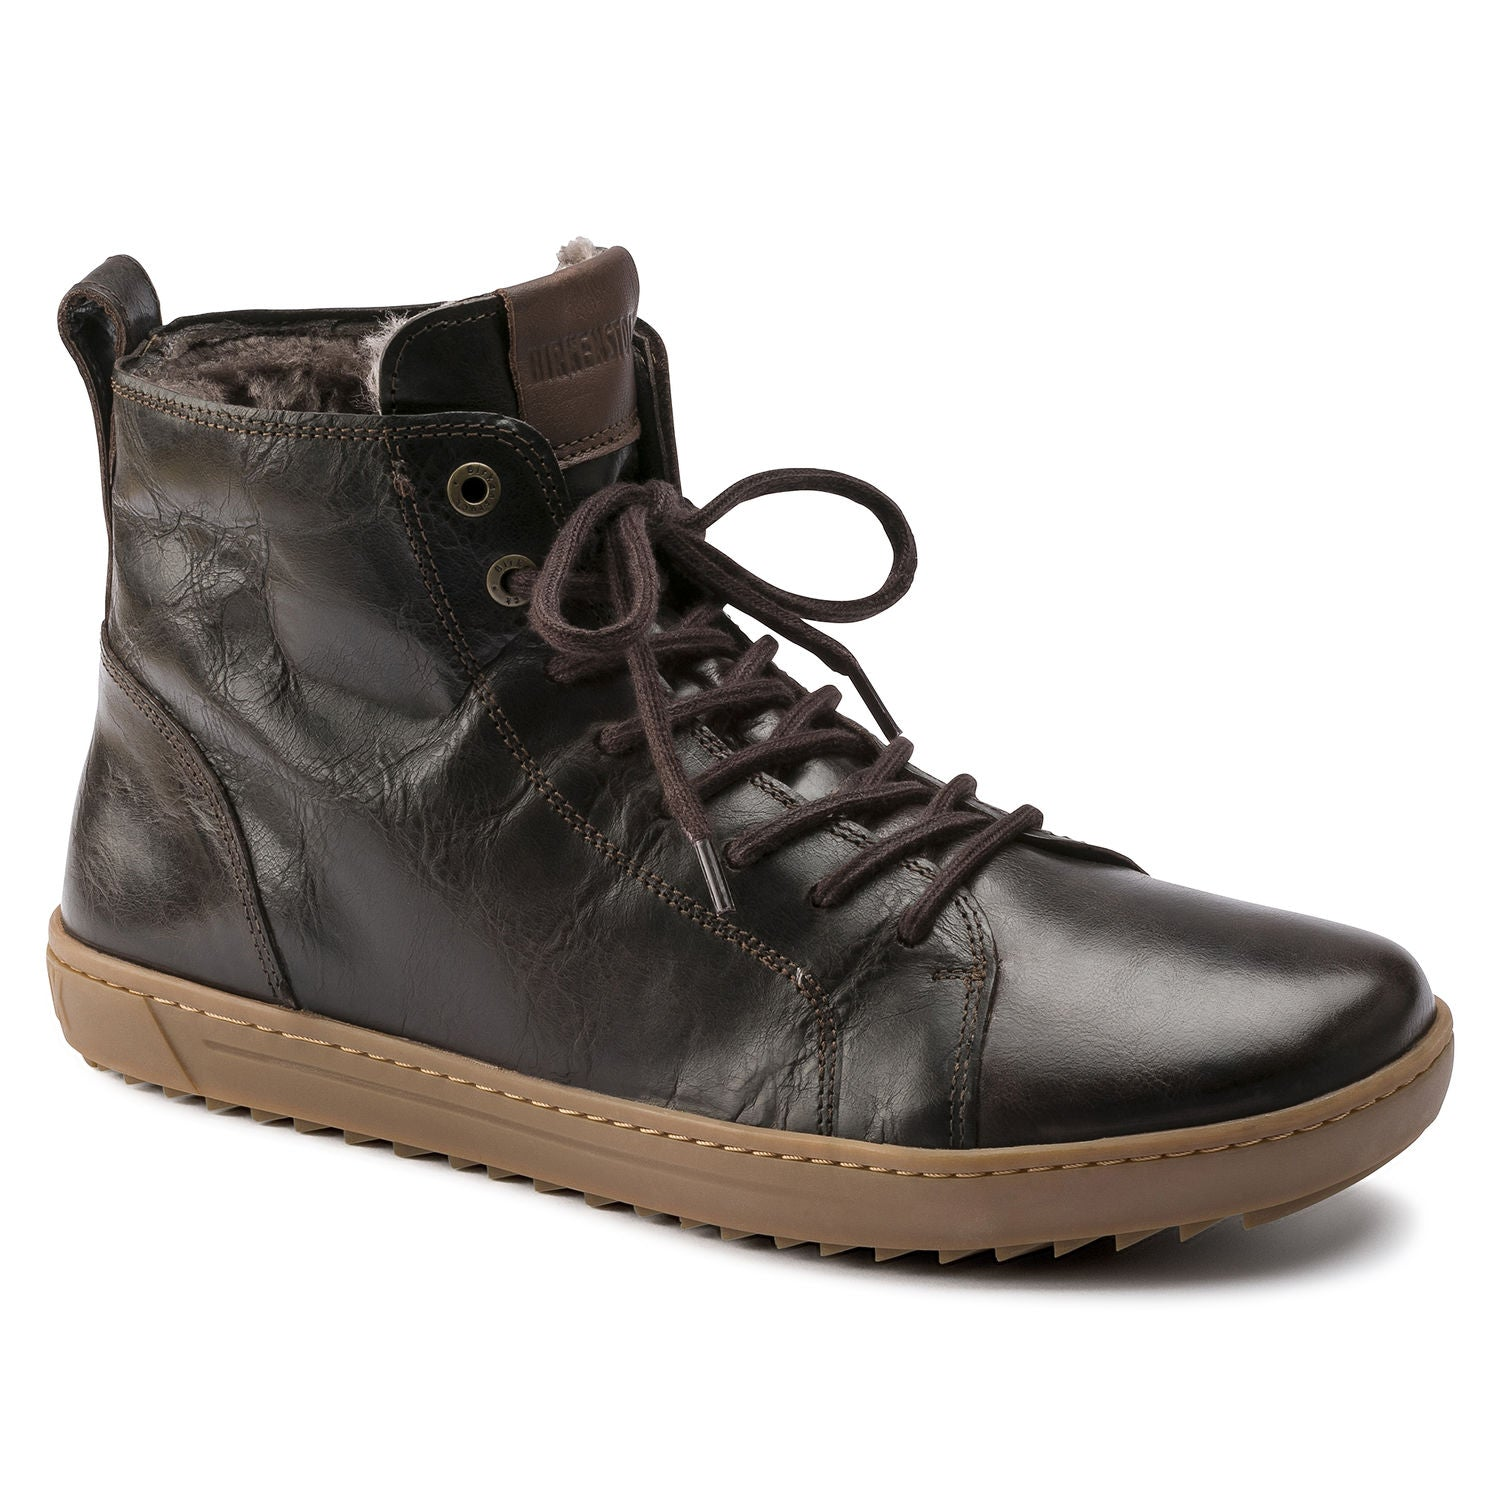 Bartlett Men - Aviator Mocha Leather Shearling